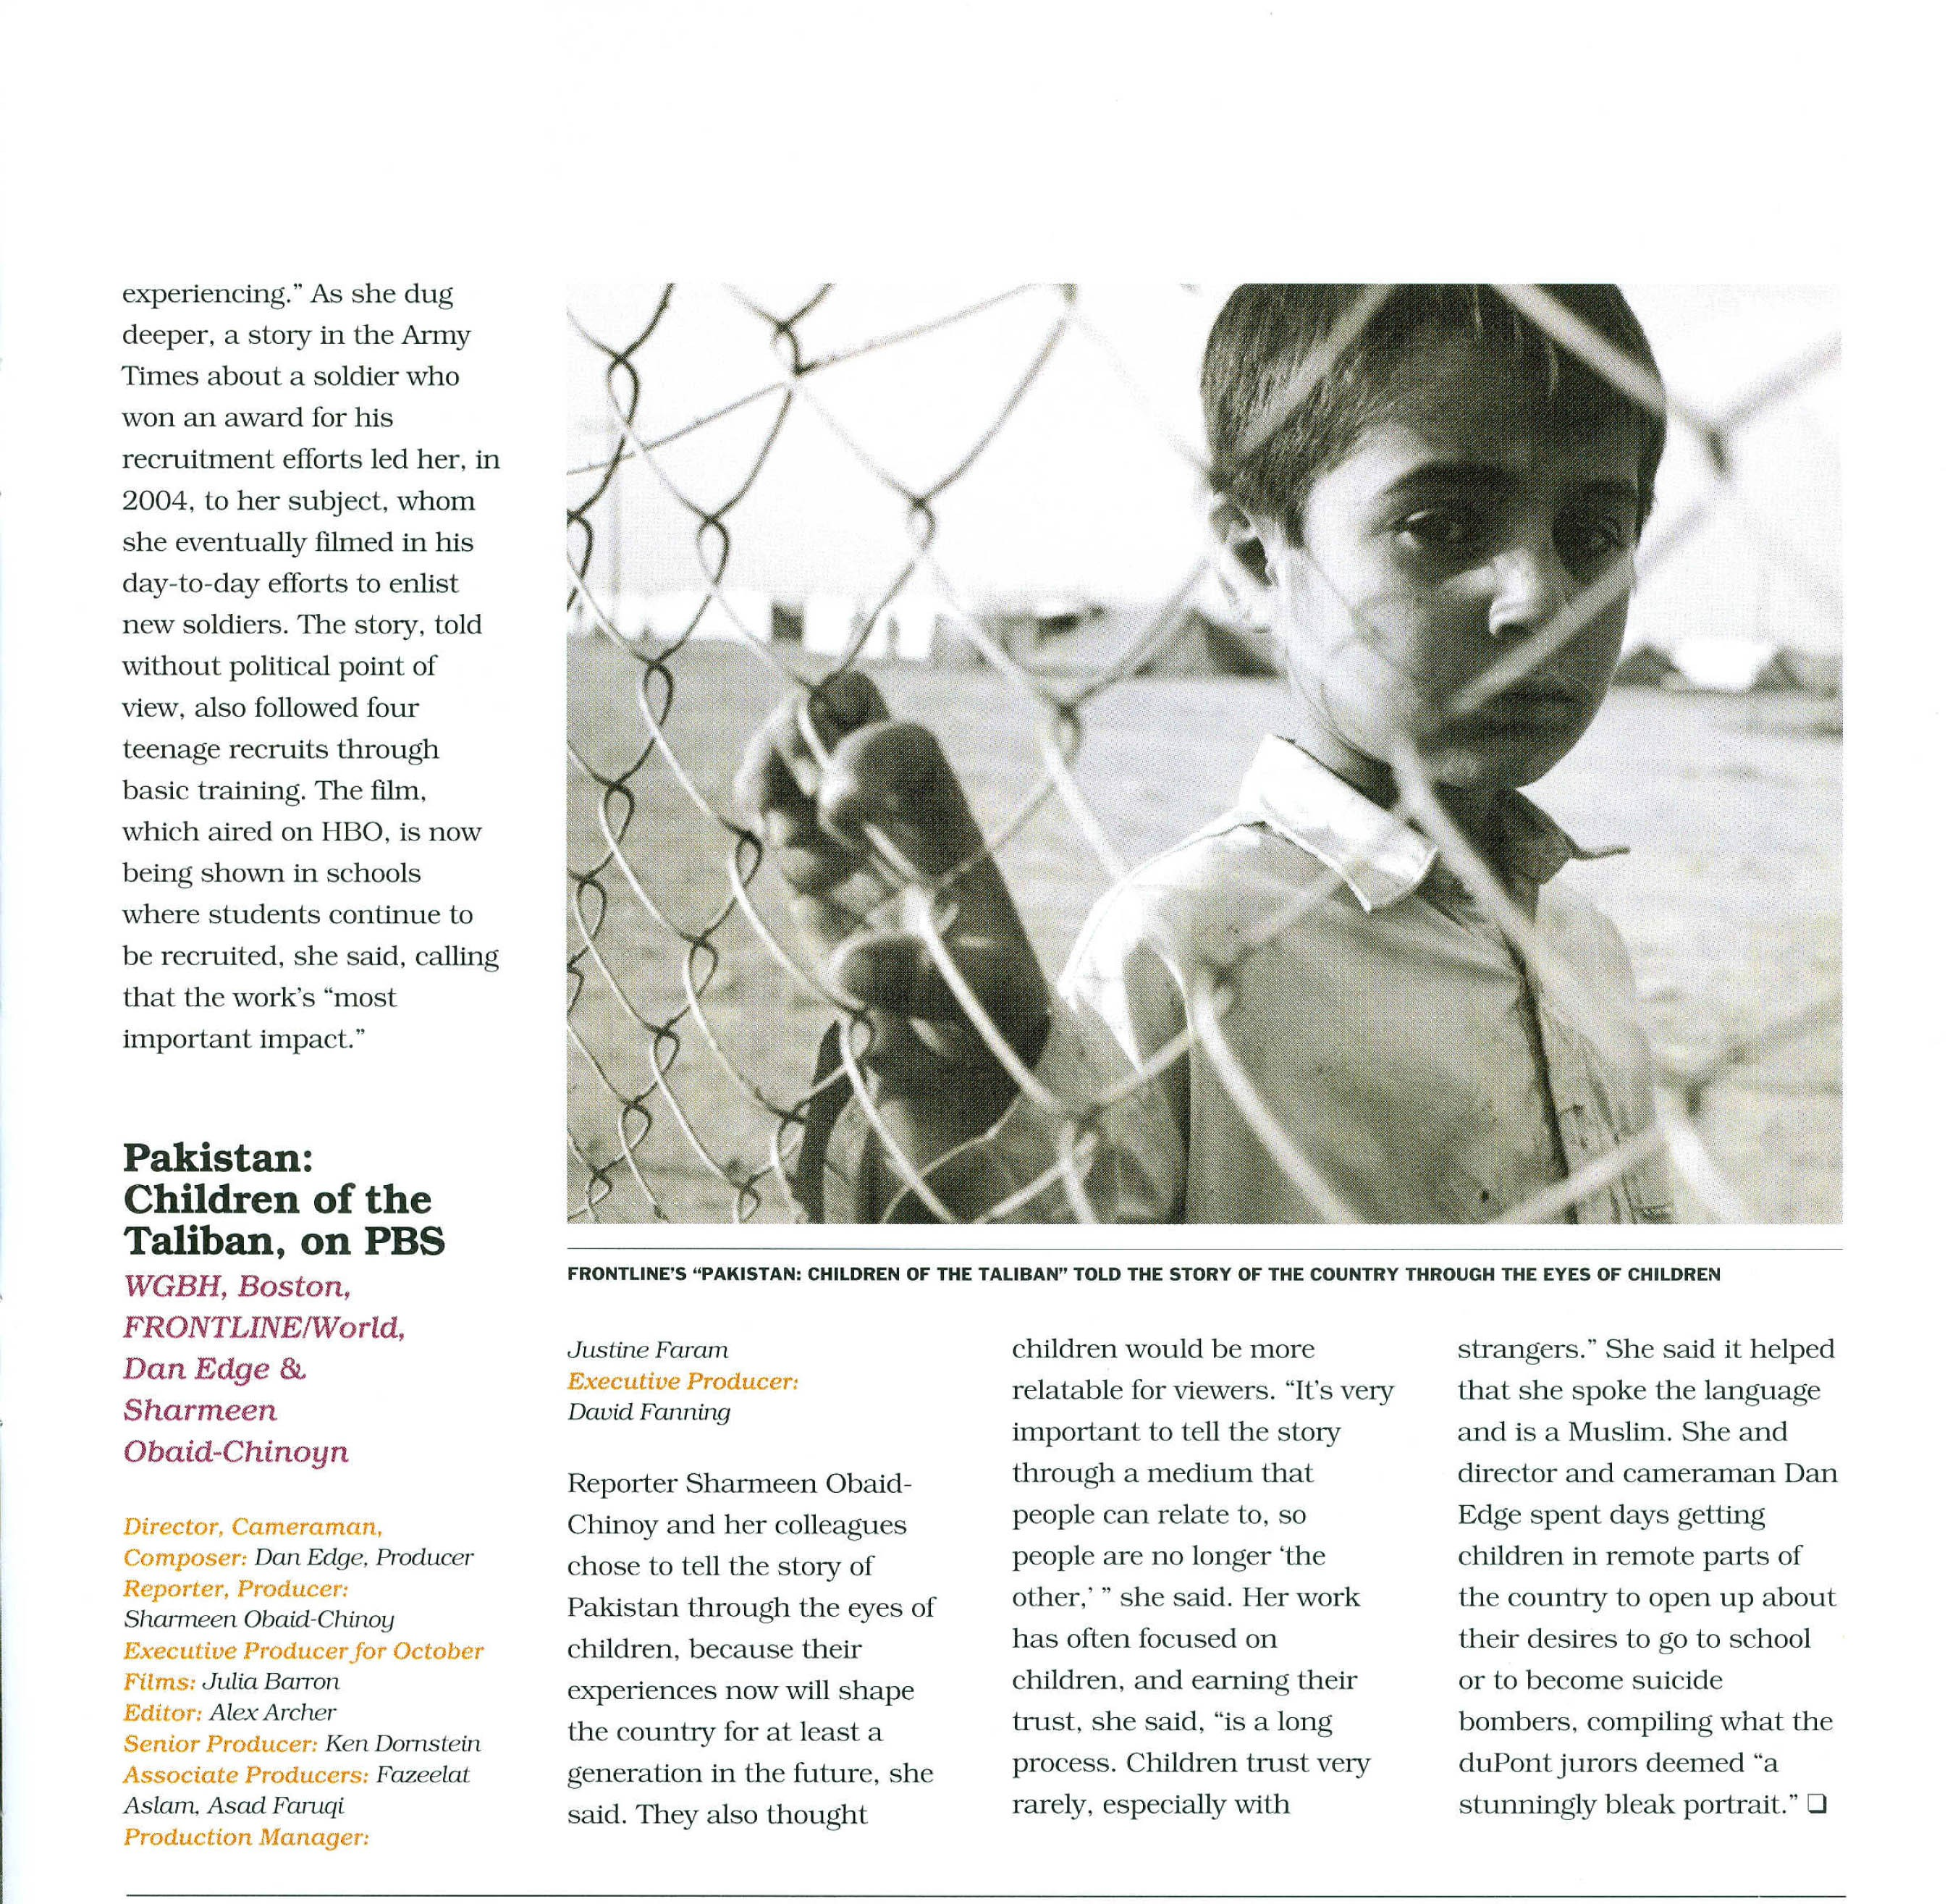 Pak; children of the taliban, on PBS, News Pro January 2010 scan